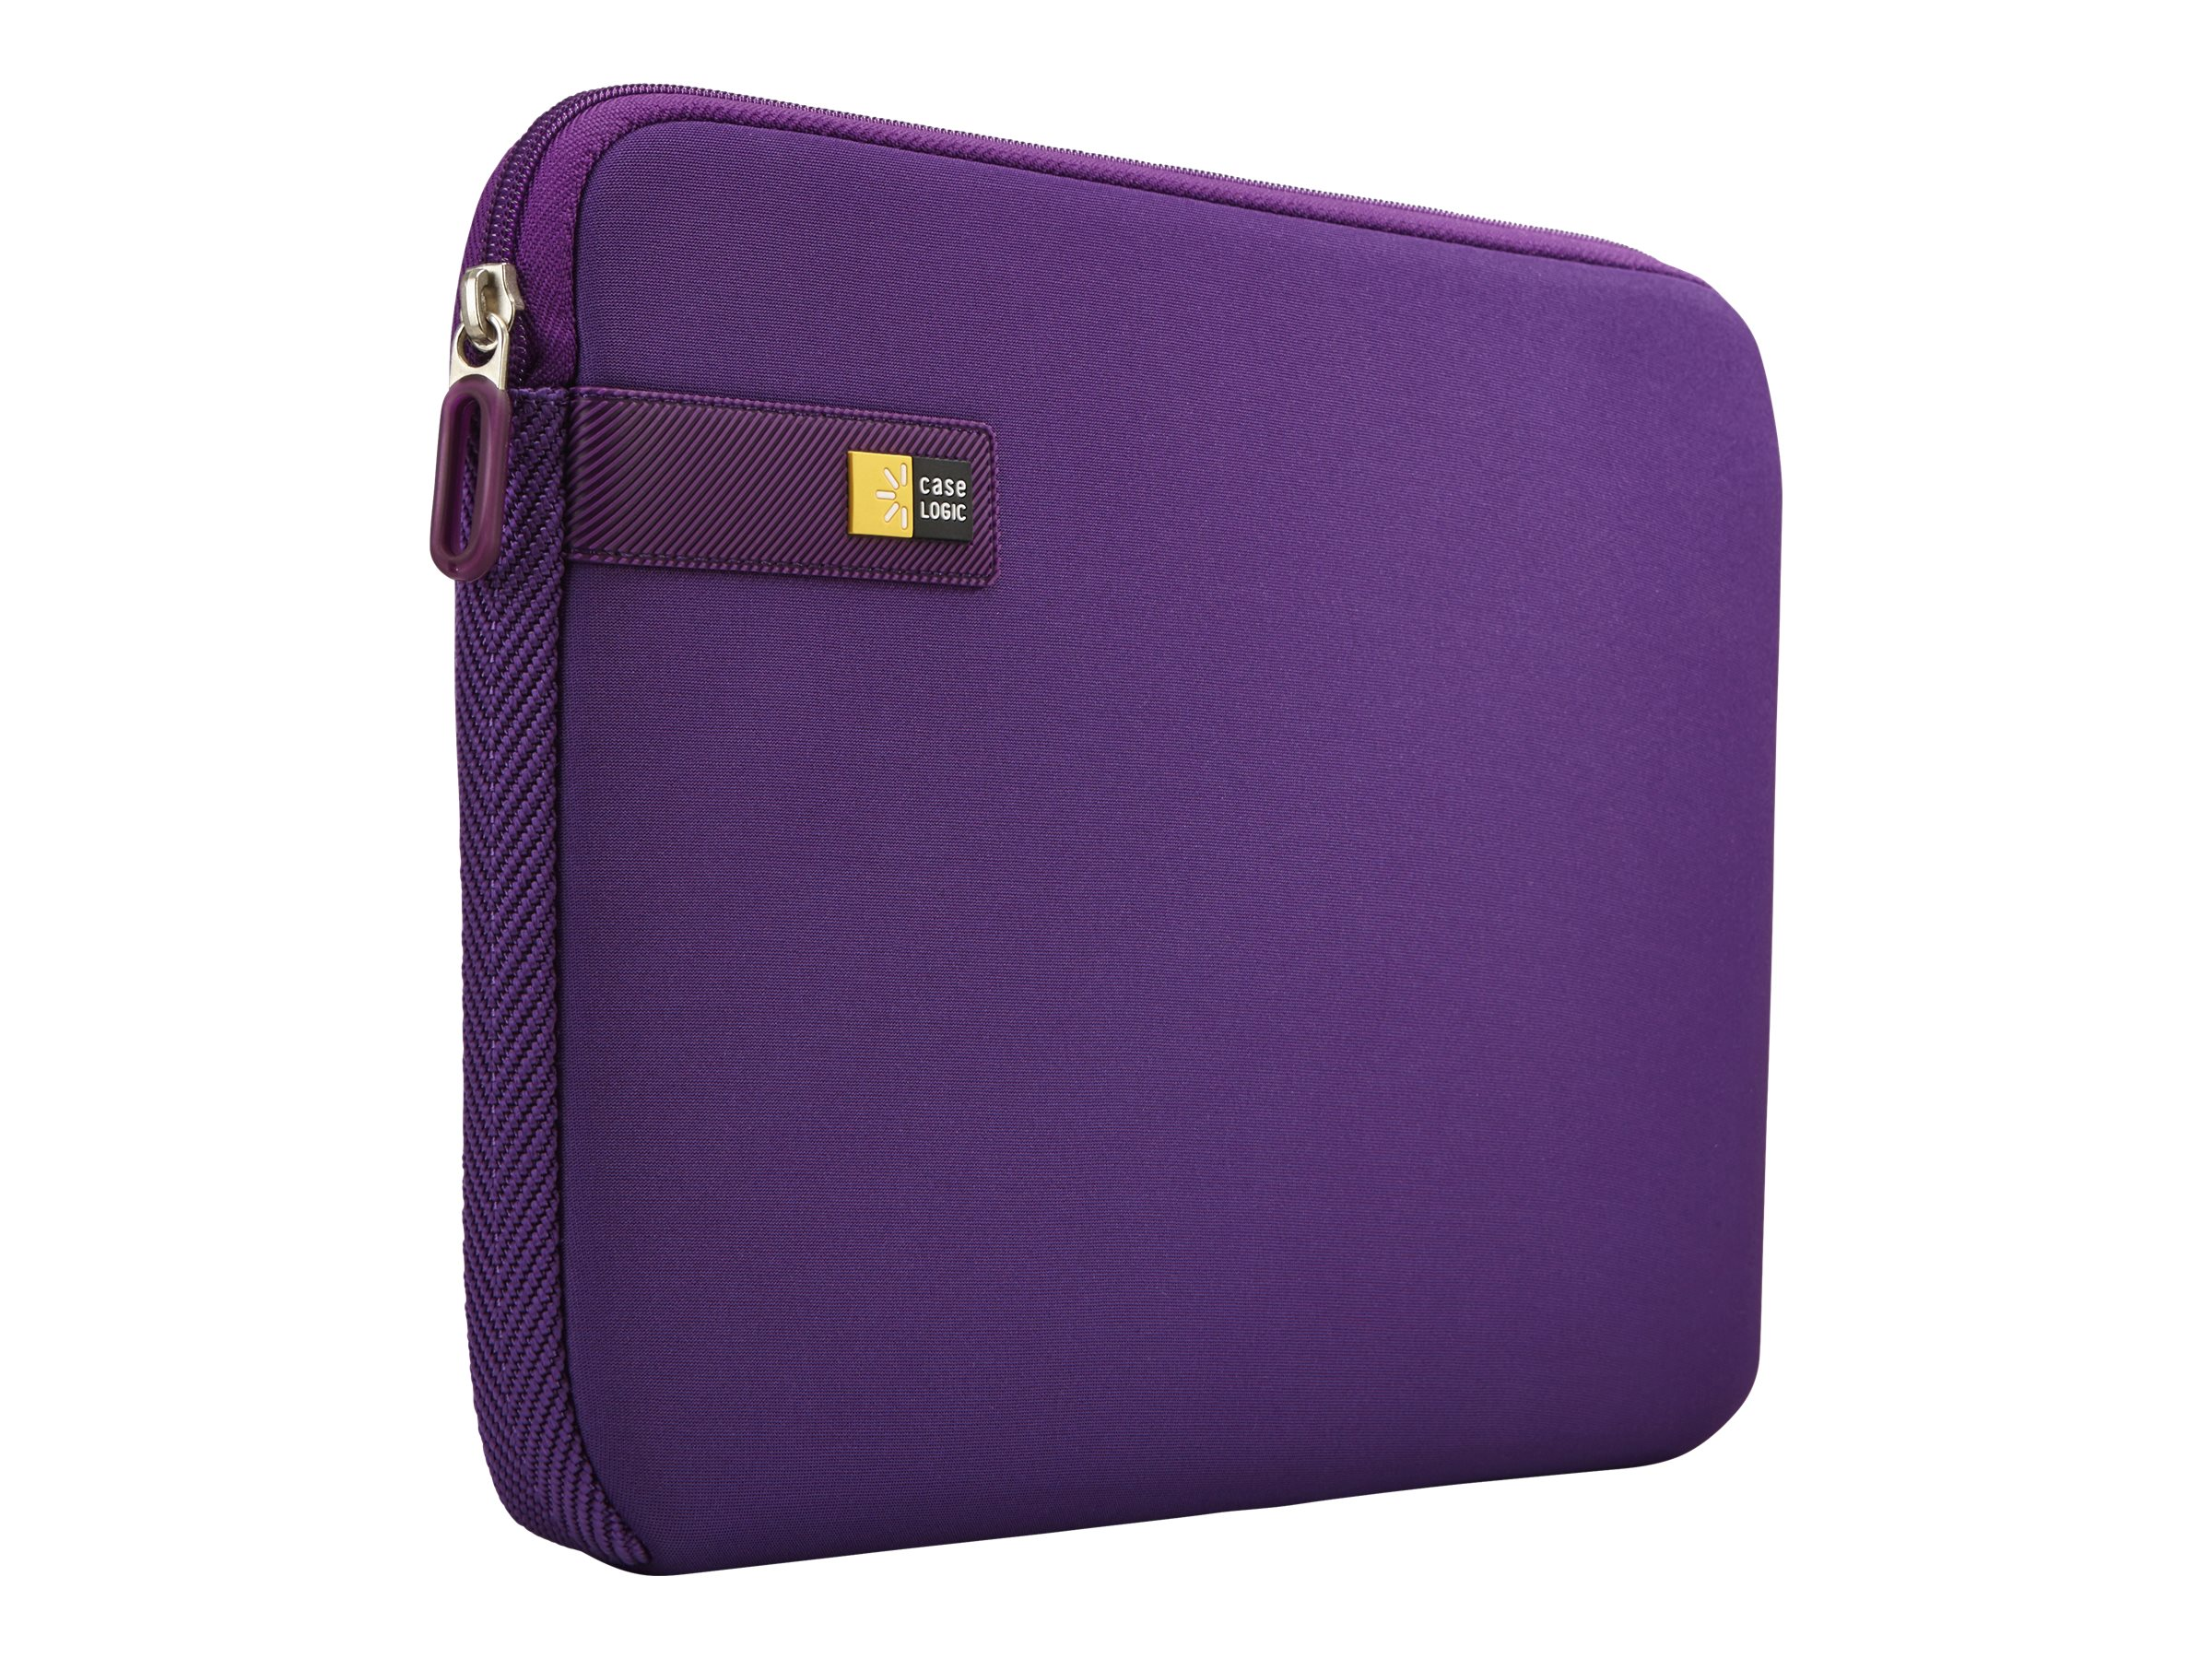 Case Logic Purple Chromebook Sleeve for 10-11.6, Lime Green, LAPS111PURPLE, 20867390, Carrying Cases - Notebook